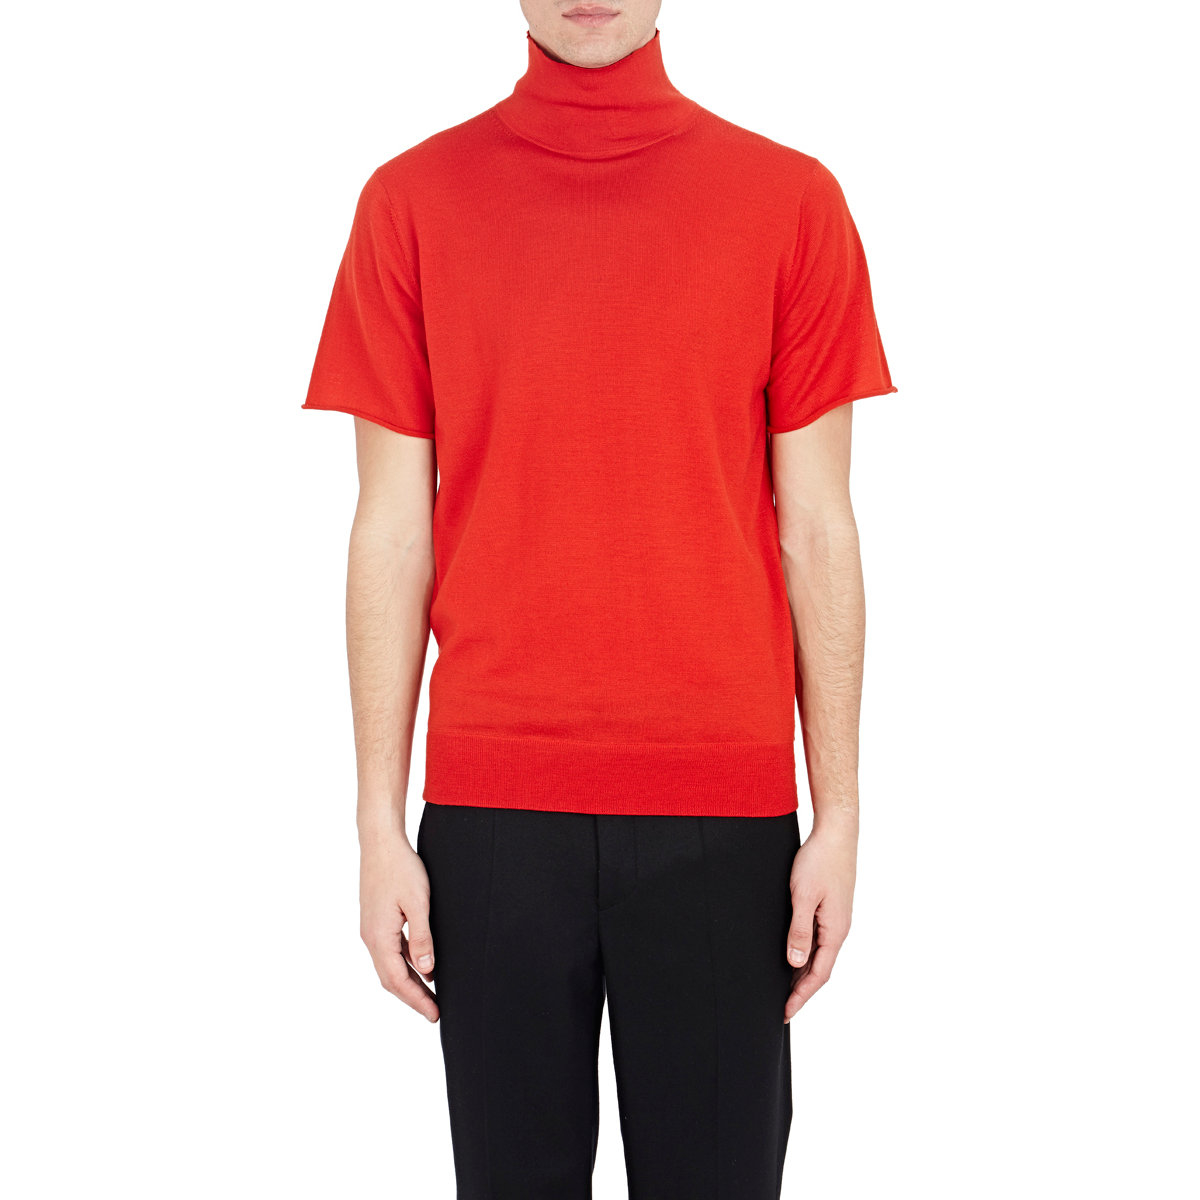 Givenchy Short-sleeve Turtleneck Sweater in Red for Men | Lyst